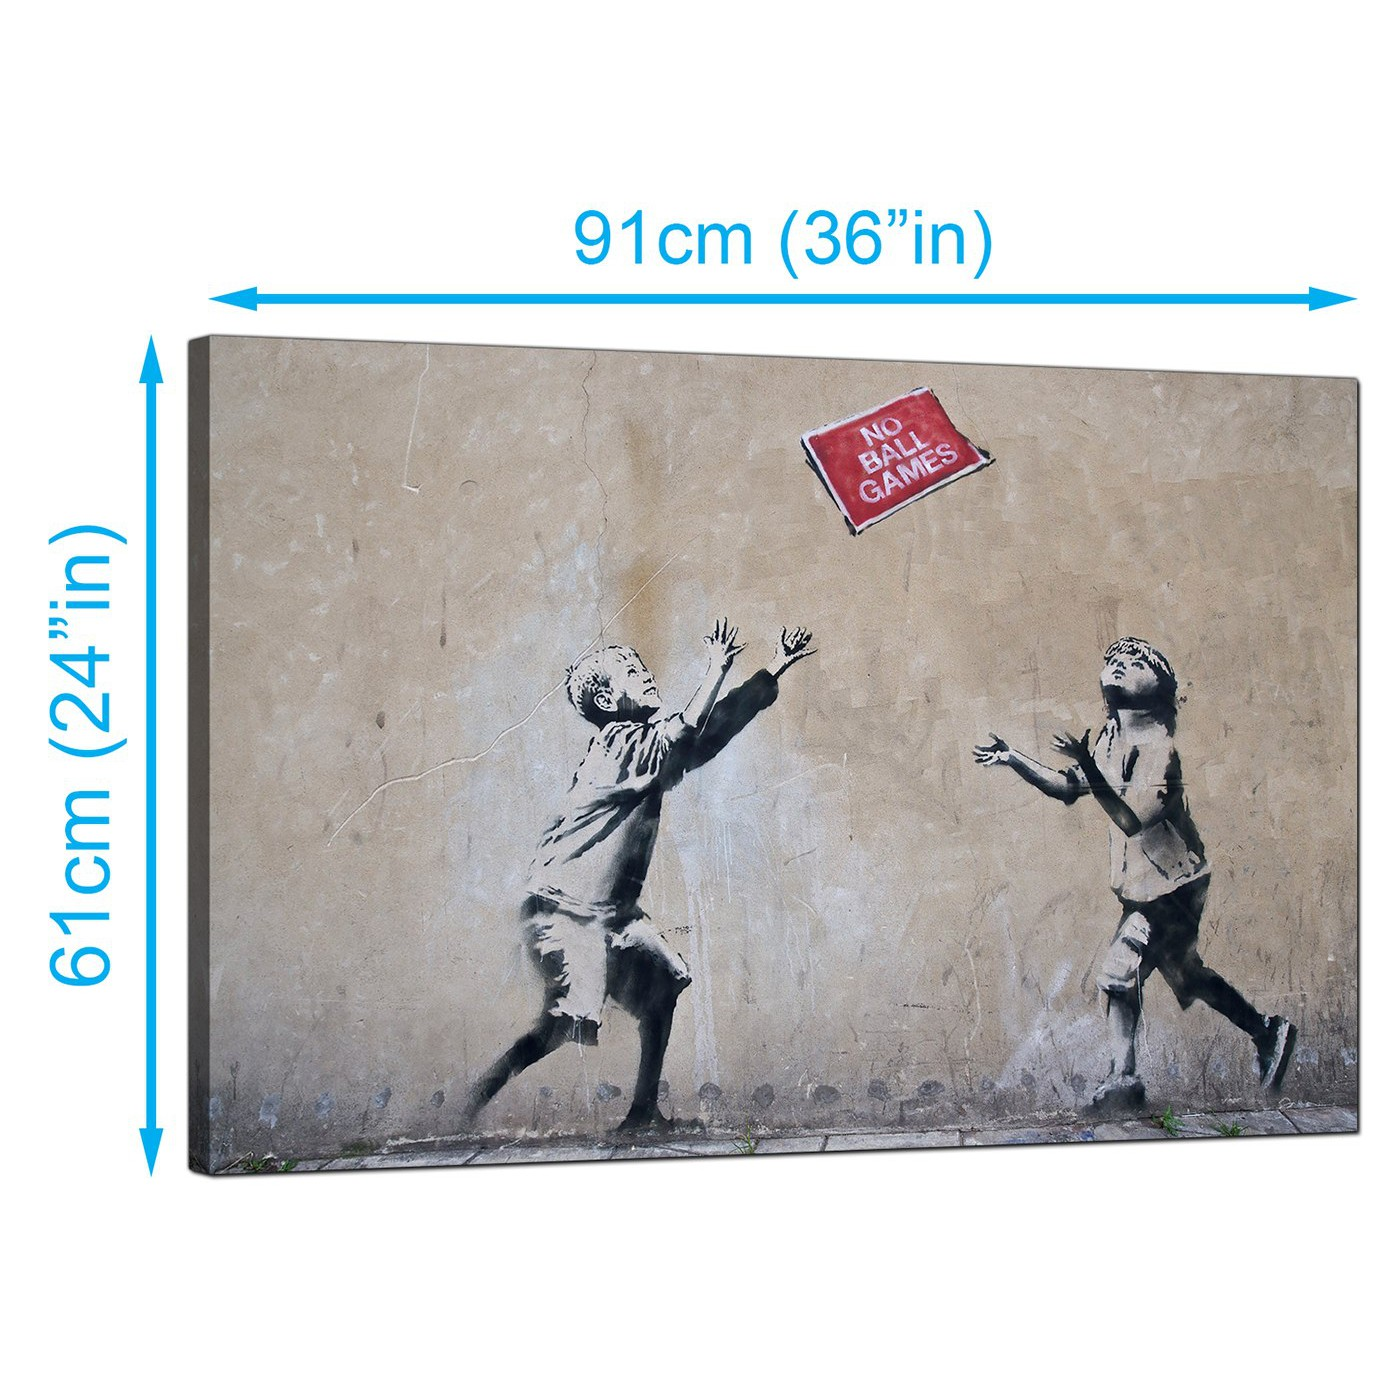 Display gallery item 2 · banksy canvas prints uk children playing with no ball games sign graffiti art display gallery item 3